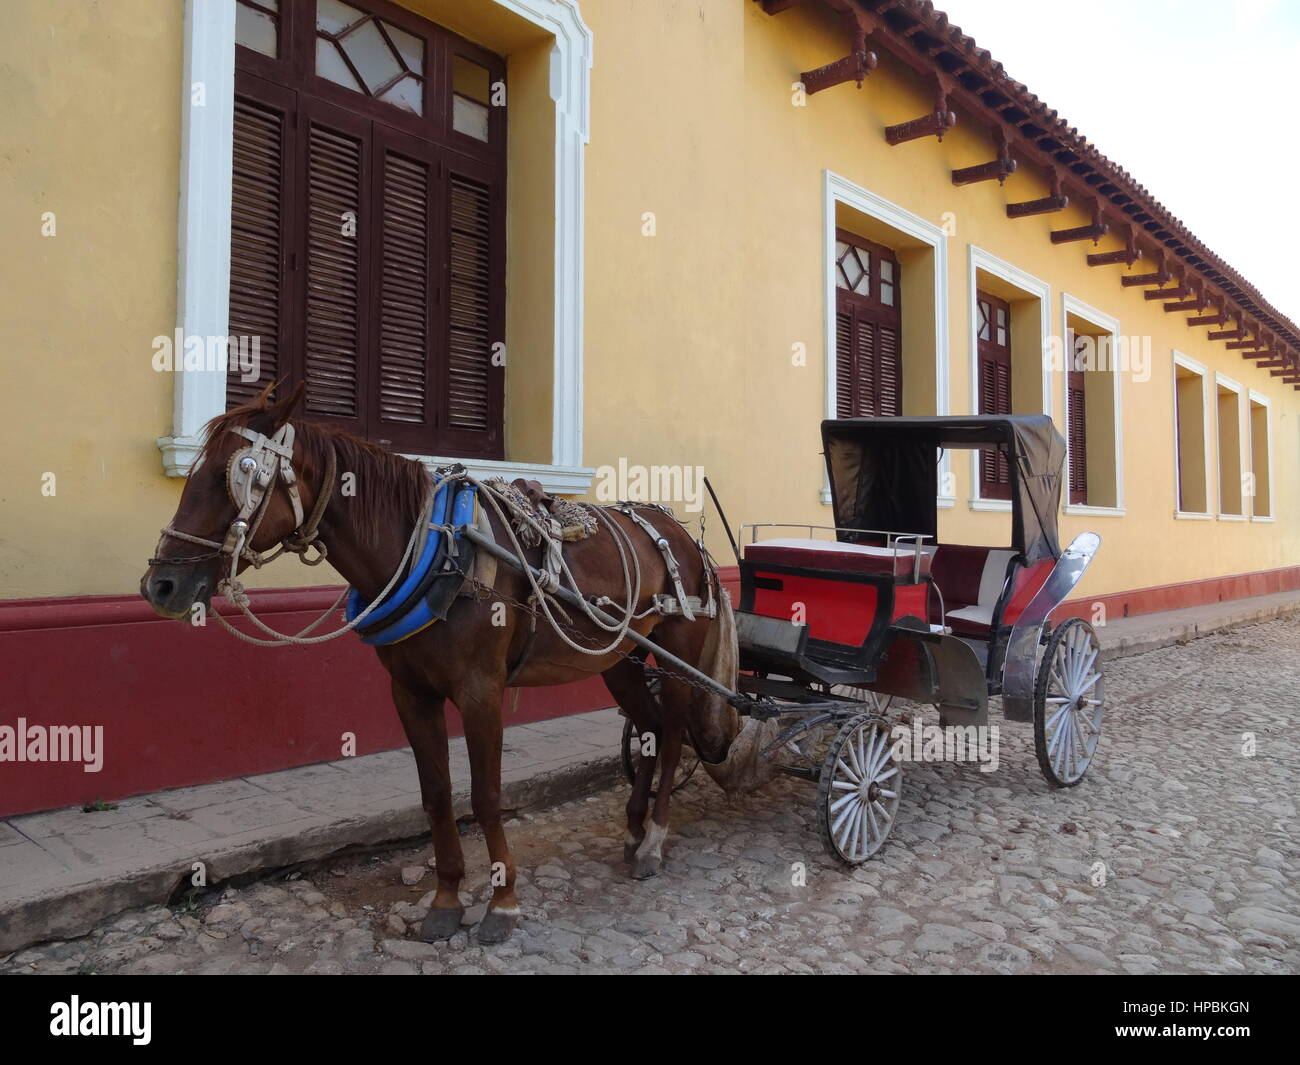 Horse and carriage on a cobbled street in Trinidad,Cuba - Stock Image